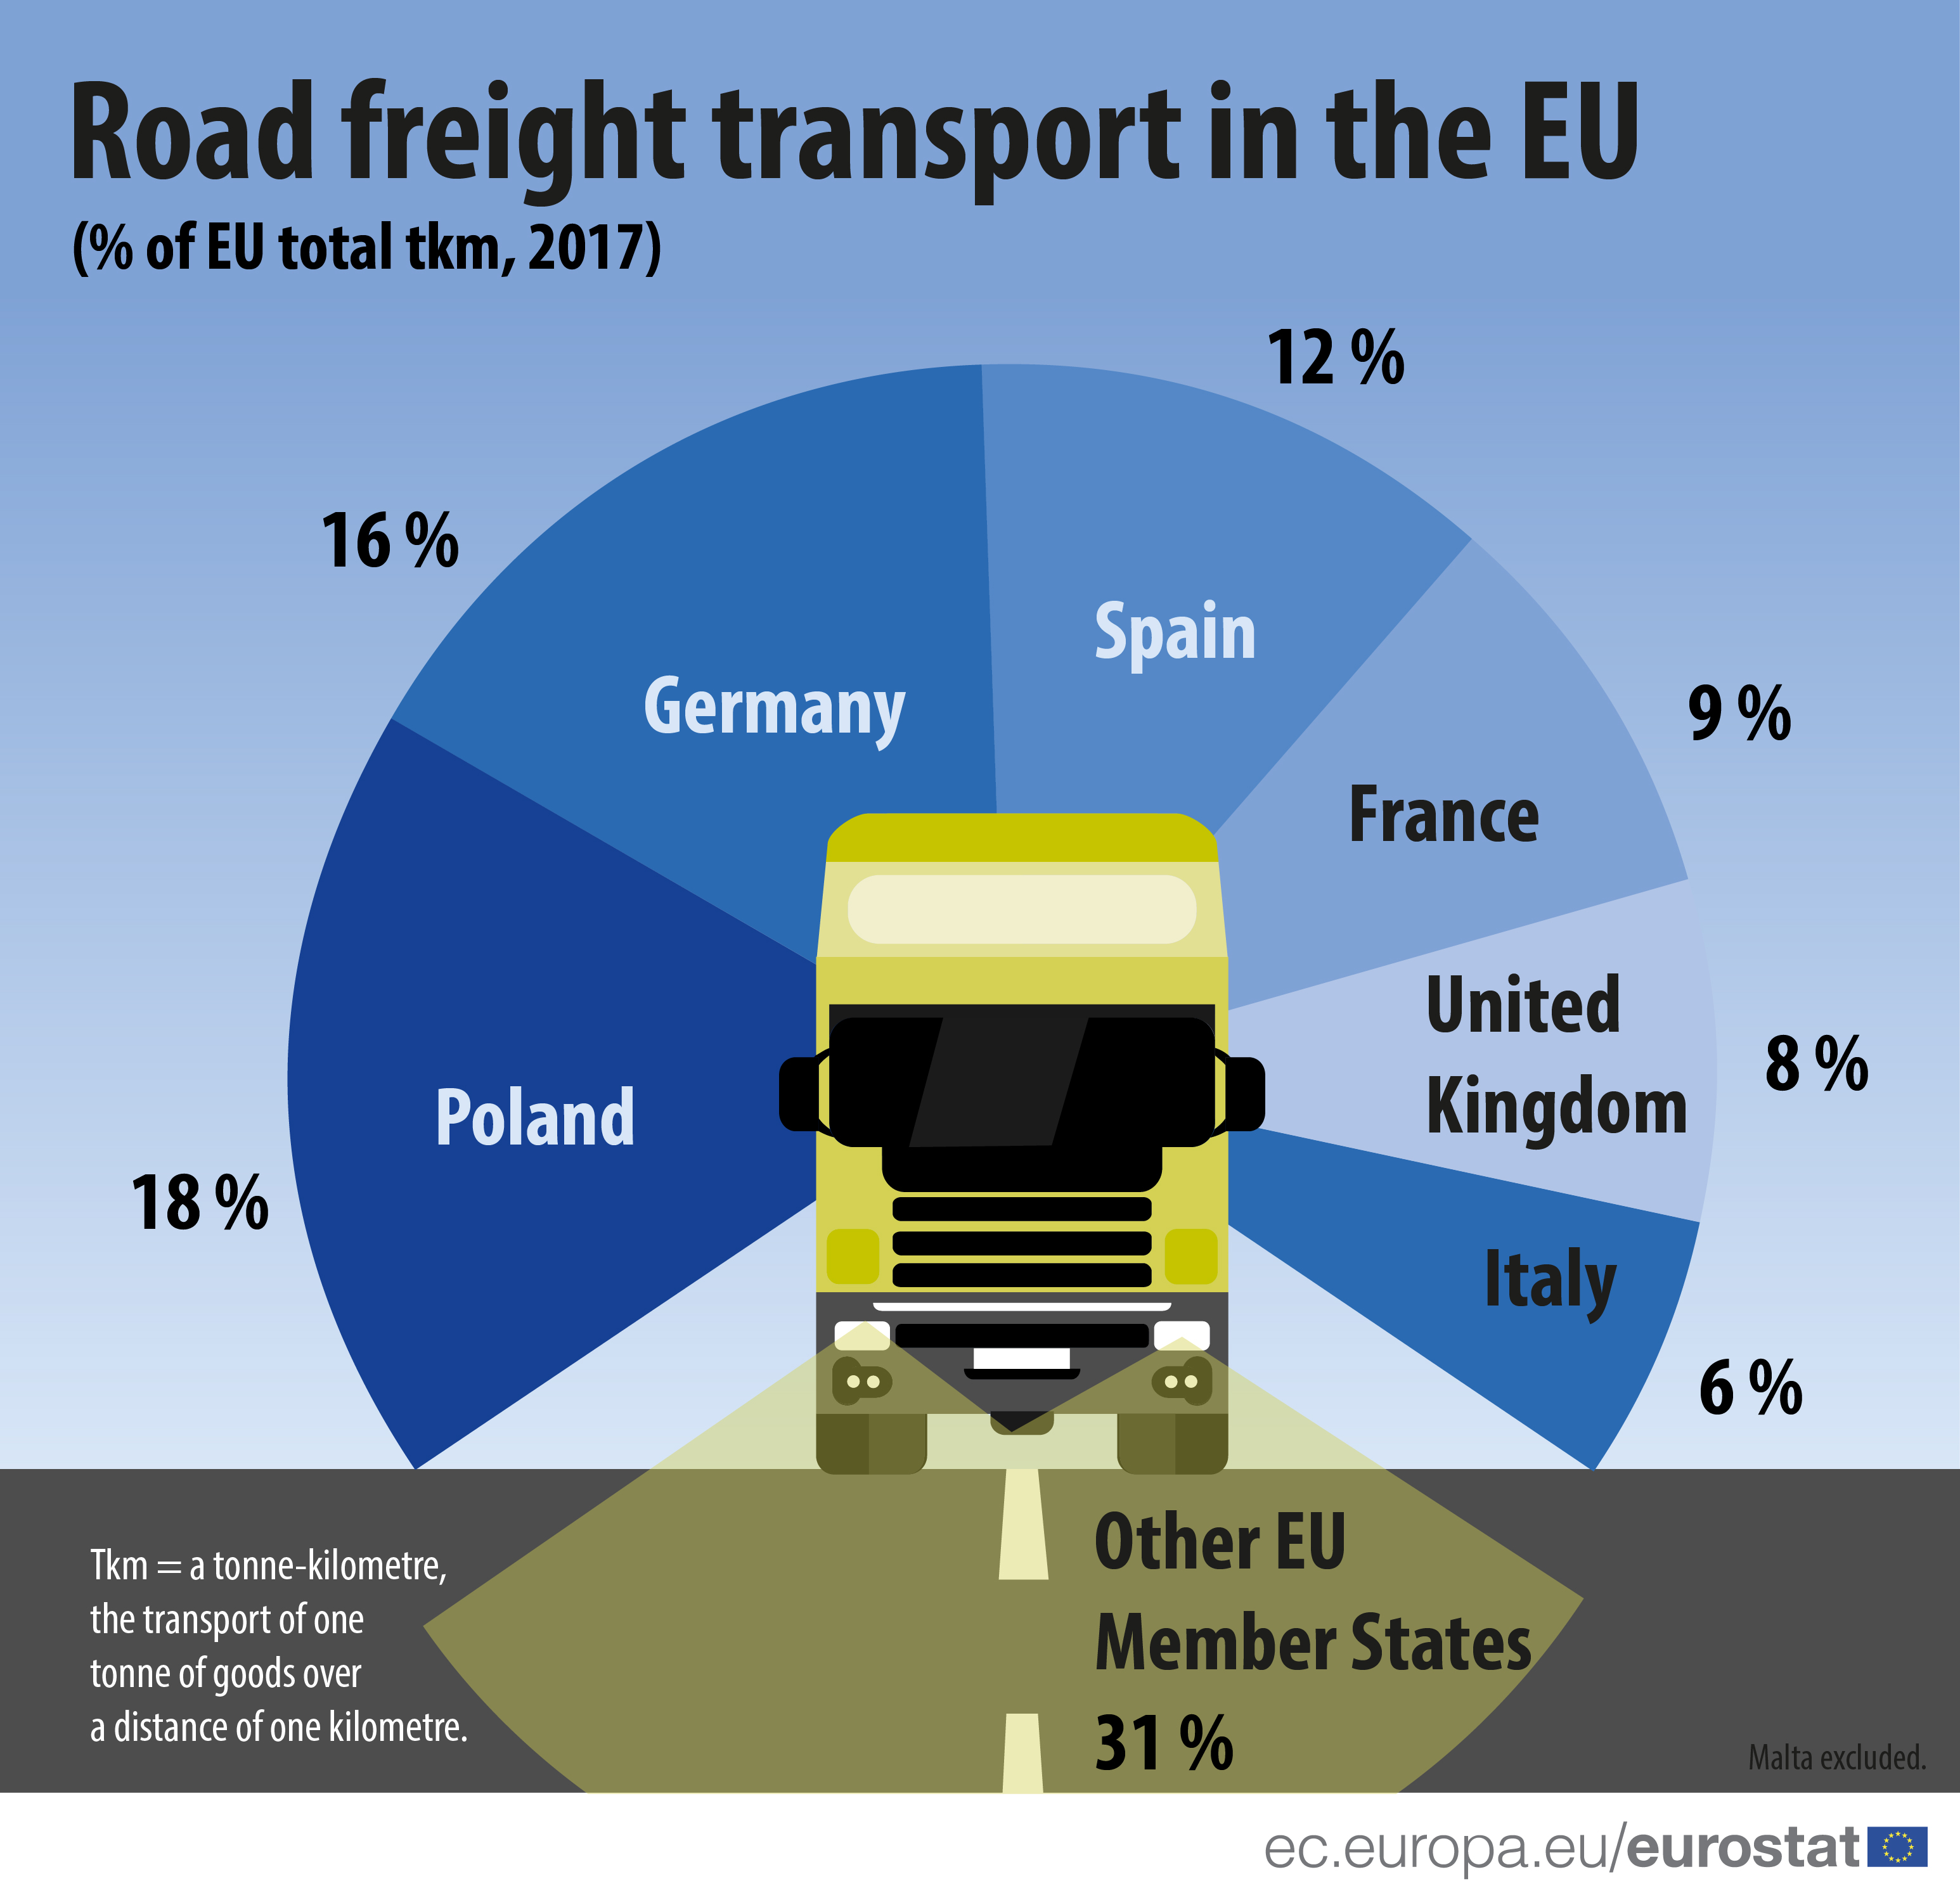 Infographic: Share of road freight transport by country 2017